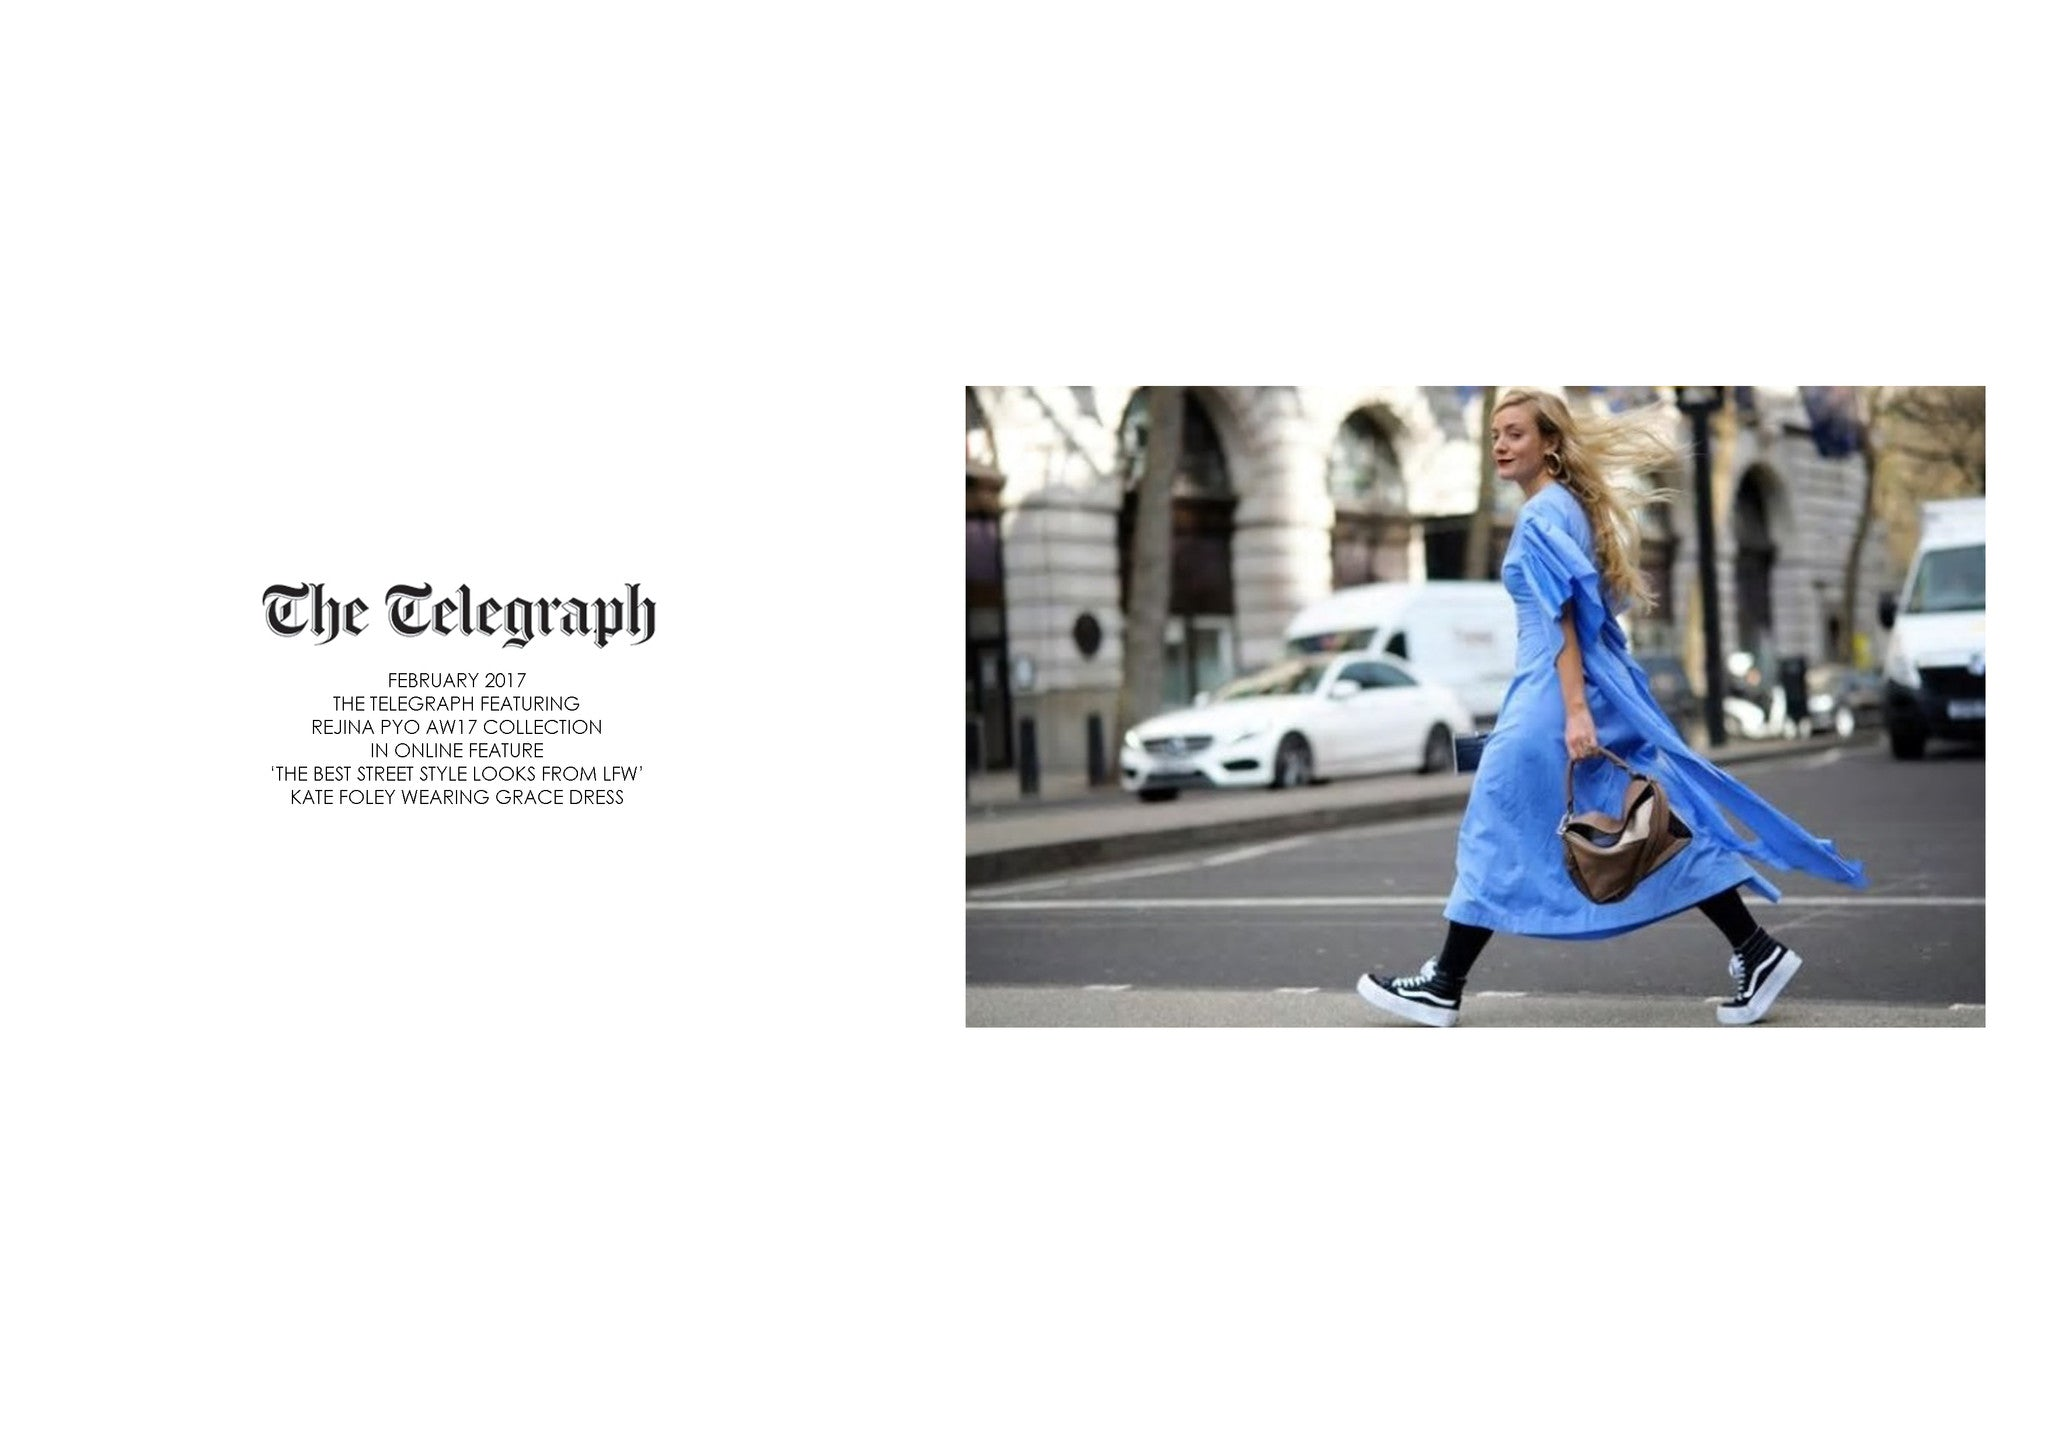 THE TELEGRAPH: FEATURING REJINA PYO AW17 GRACE DRESS DURING LFW